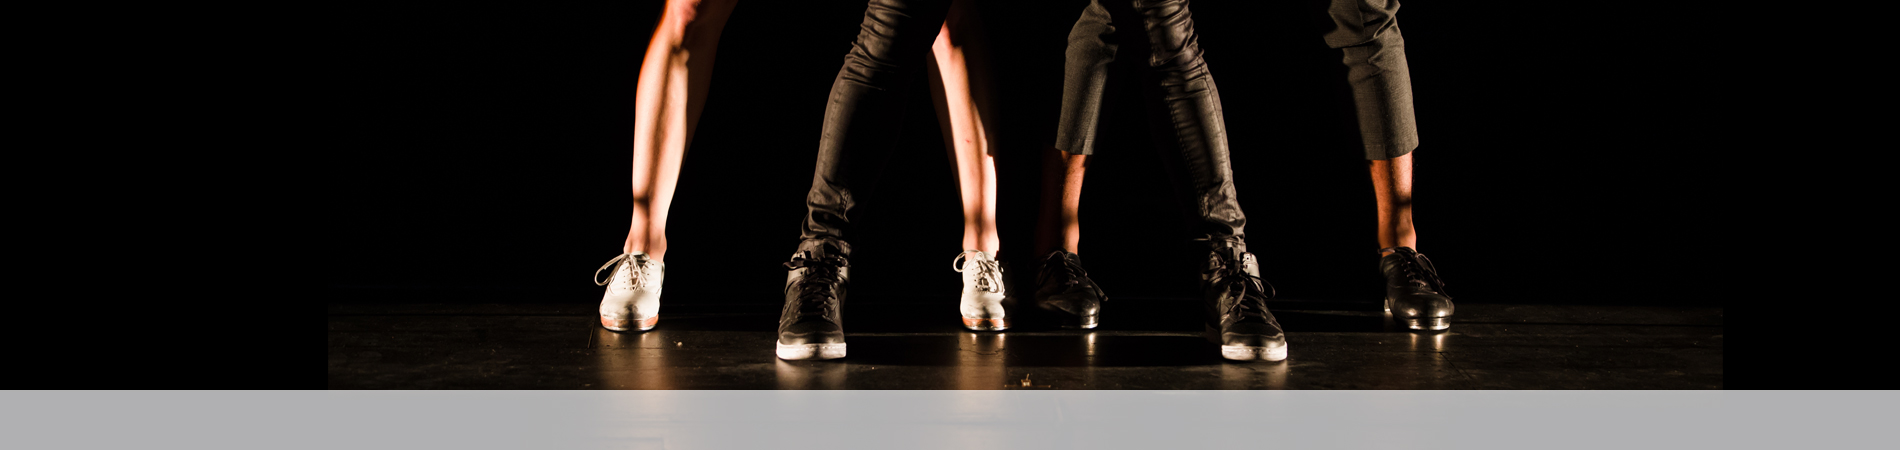 Dance image - legs with tap shoes